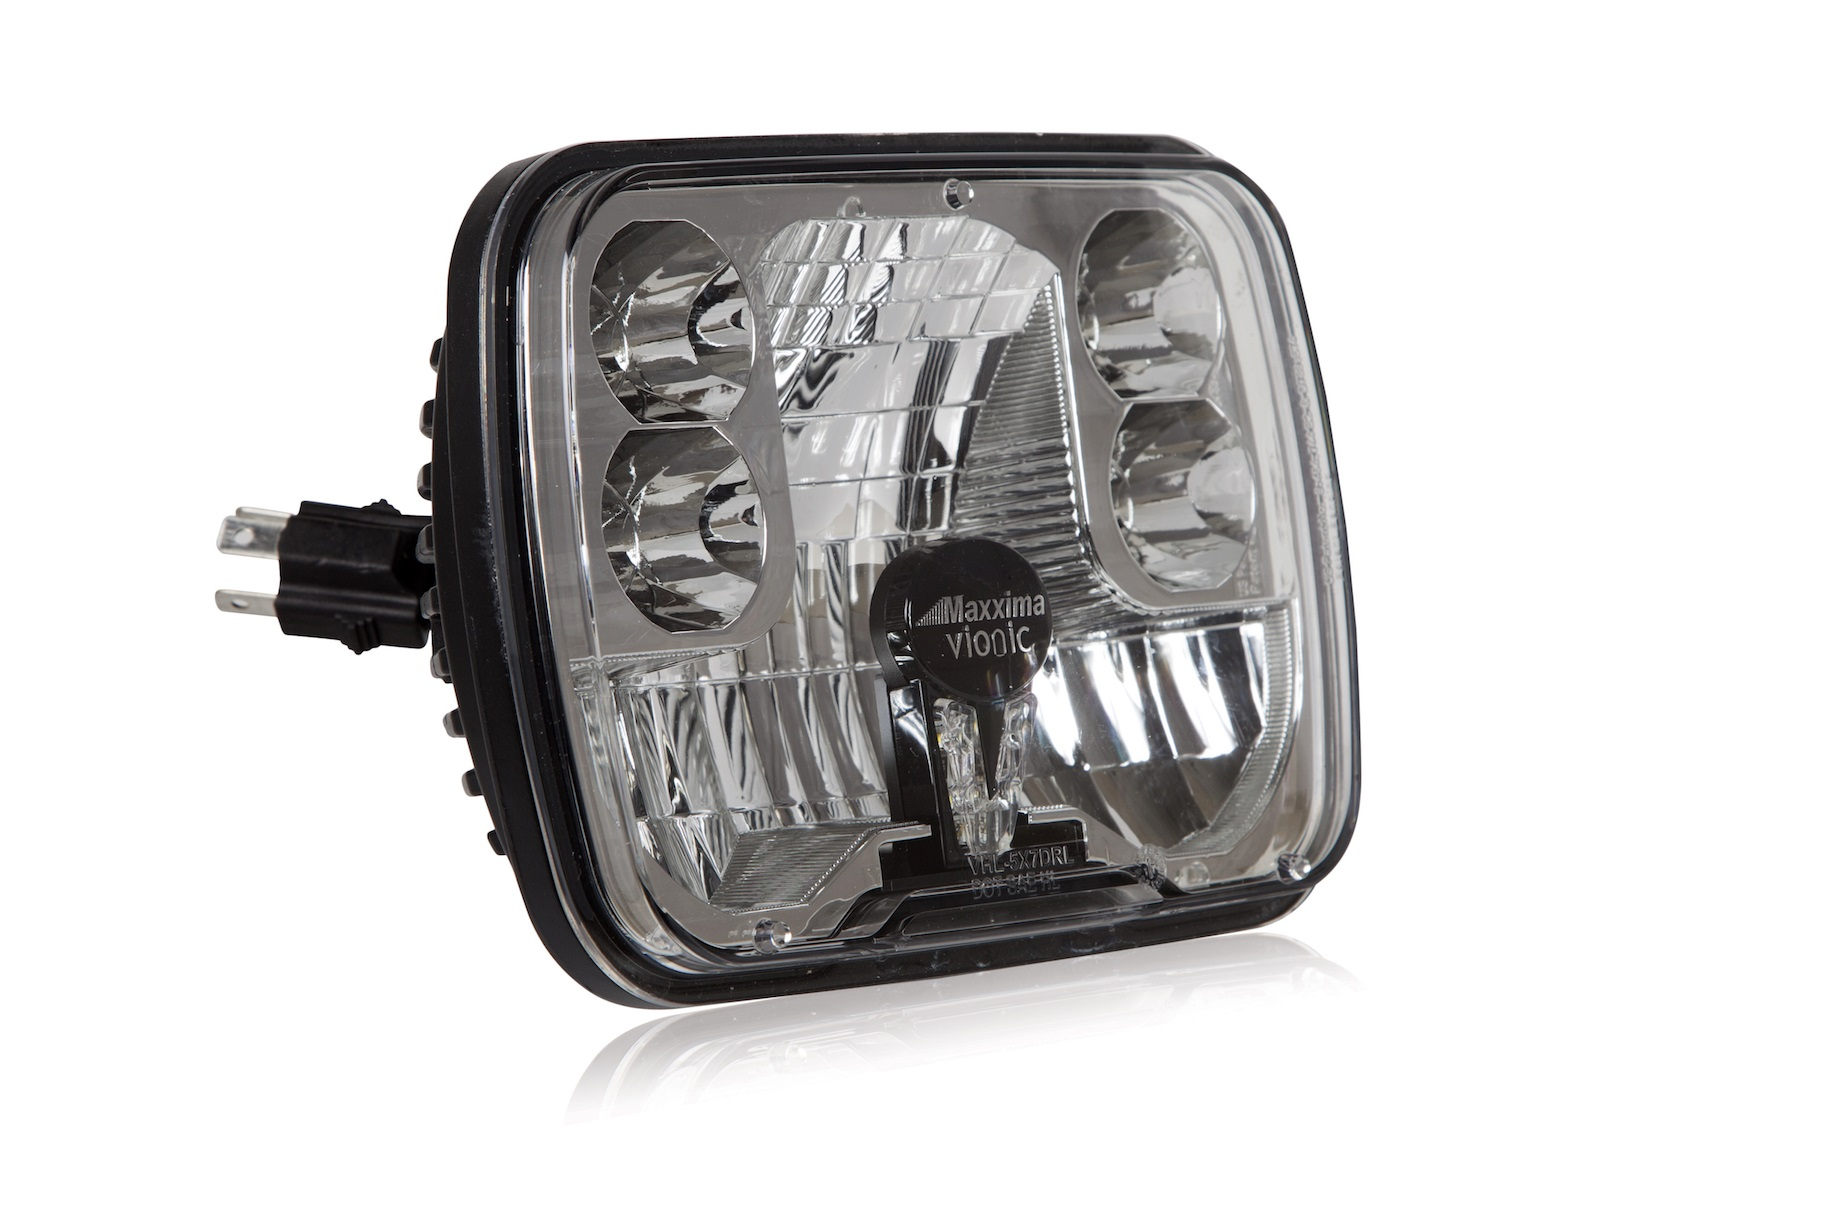 Vionic 5x7 Led Headlight Made For Durability Products